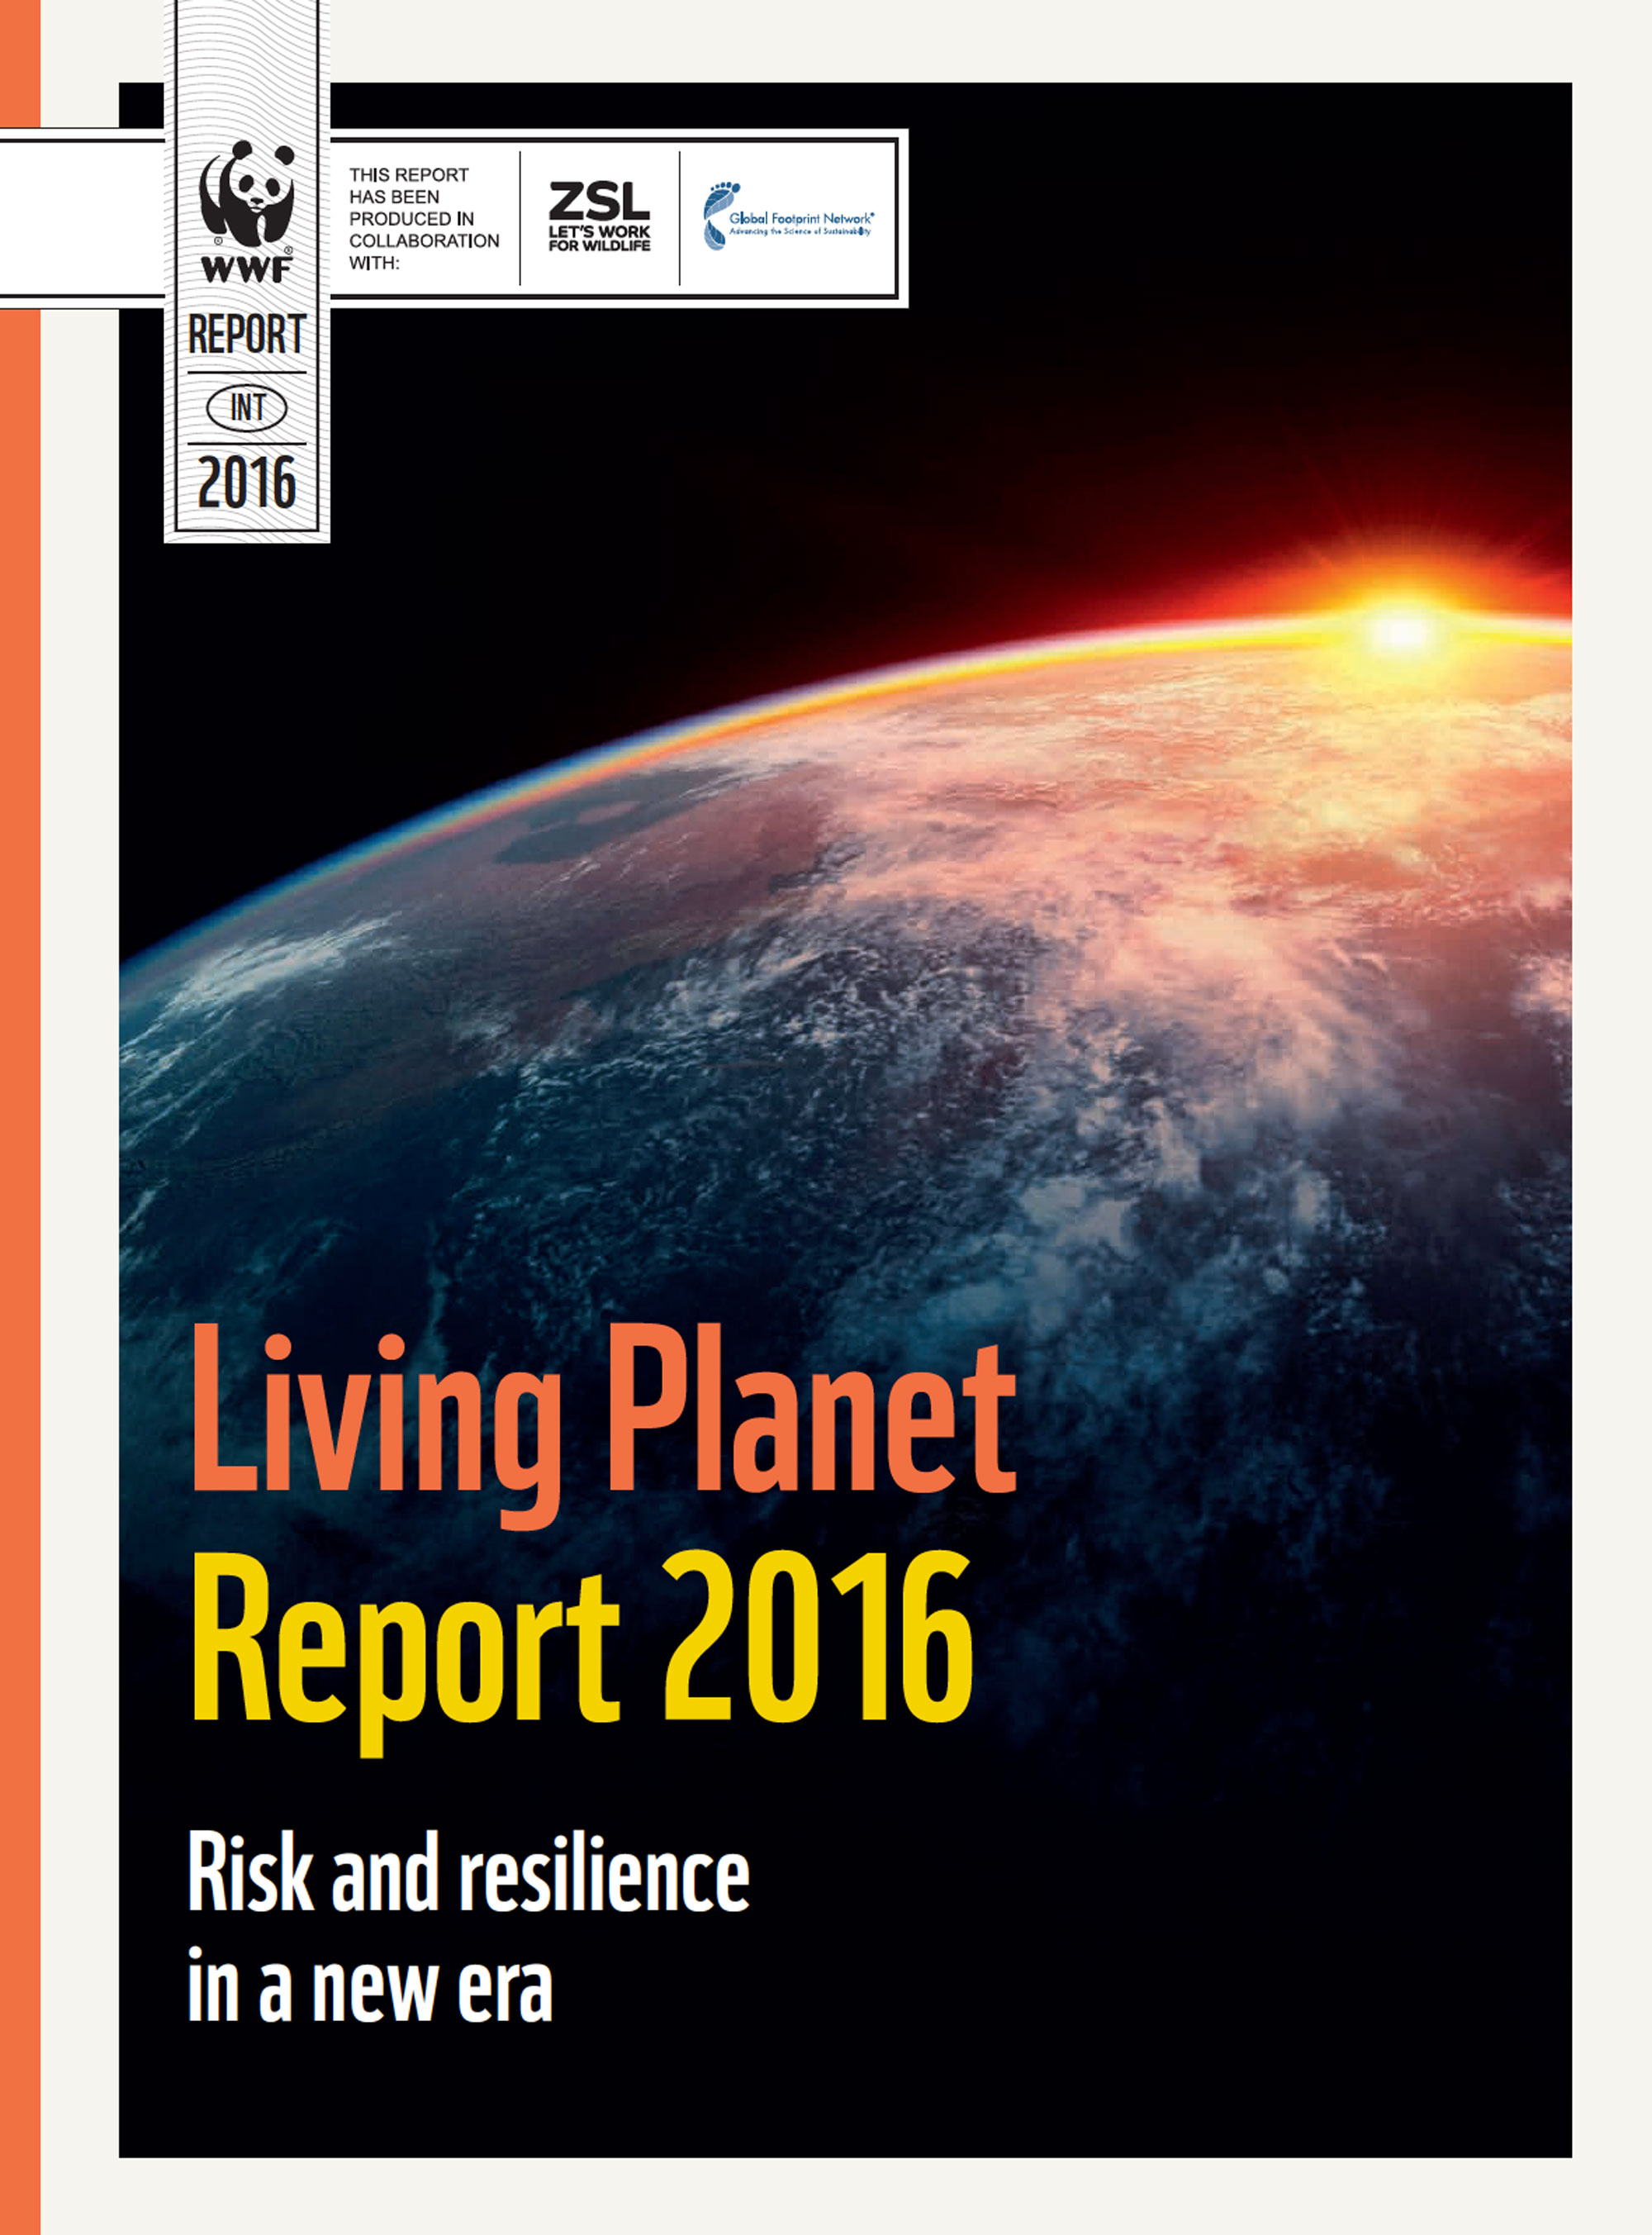 WWF's biennial Living  Planet Report is the most influential and important science-based analysis on the health of the planet and the impact of human activity.